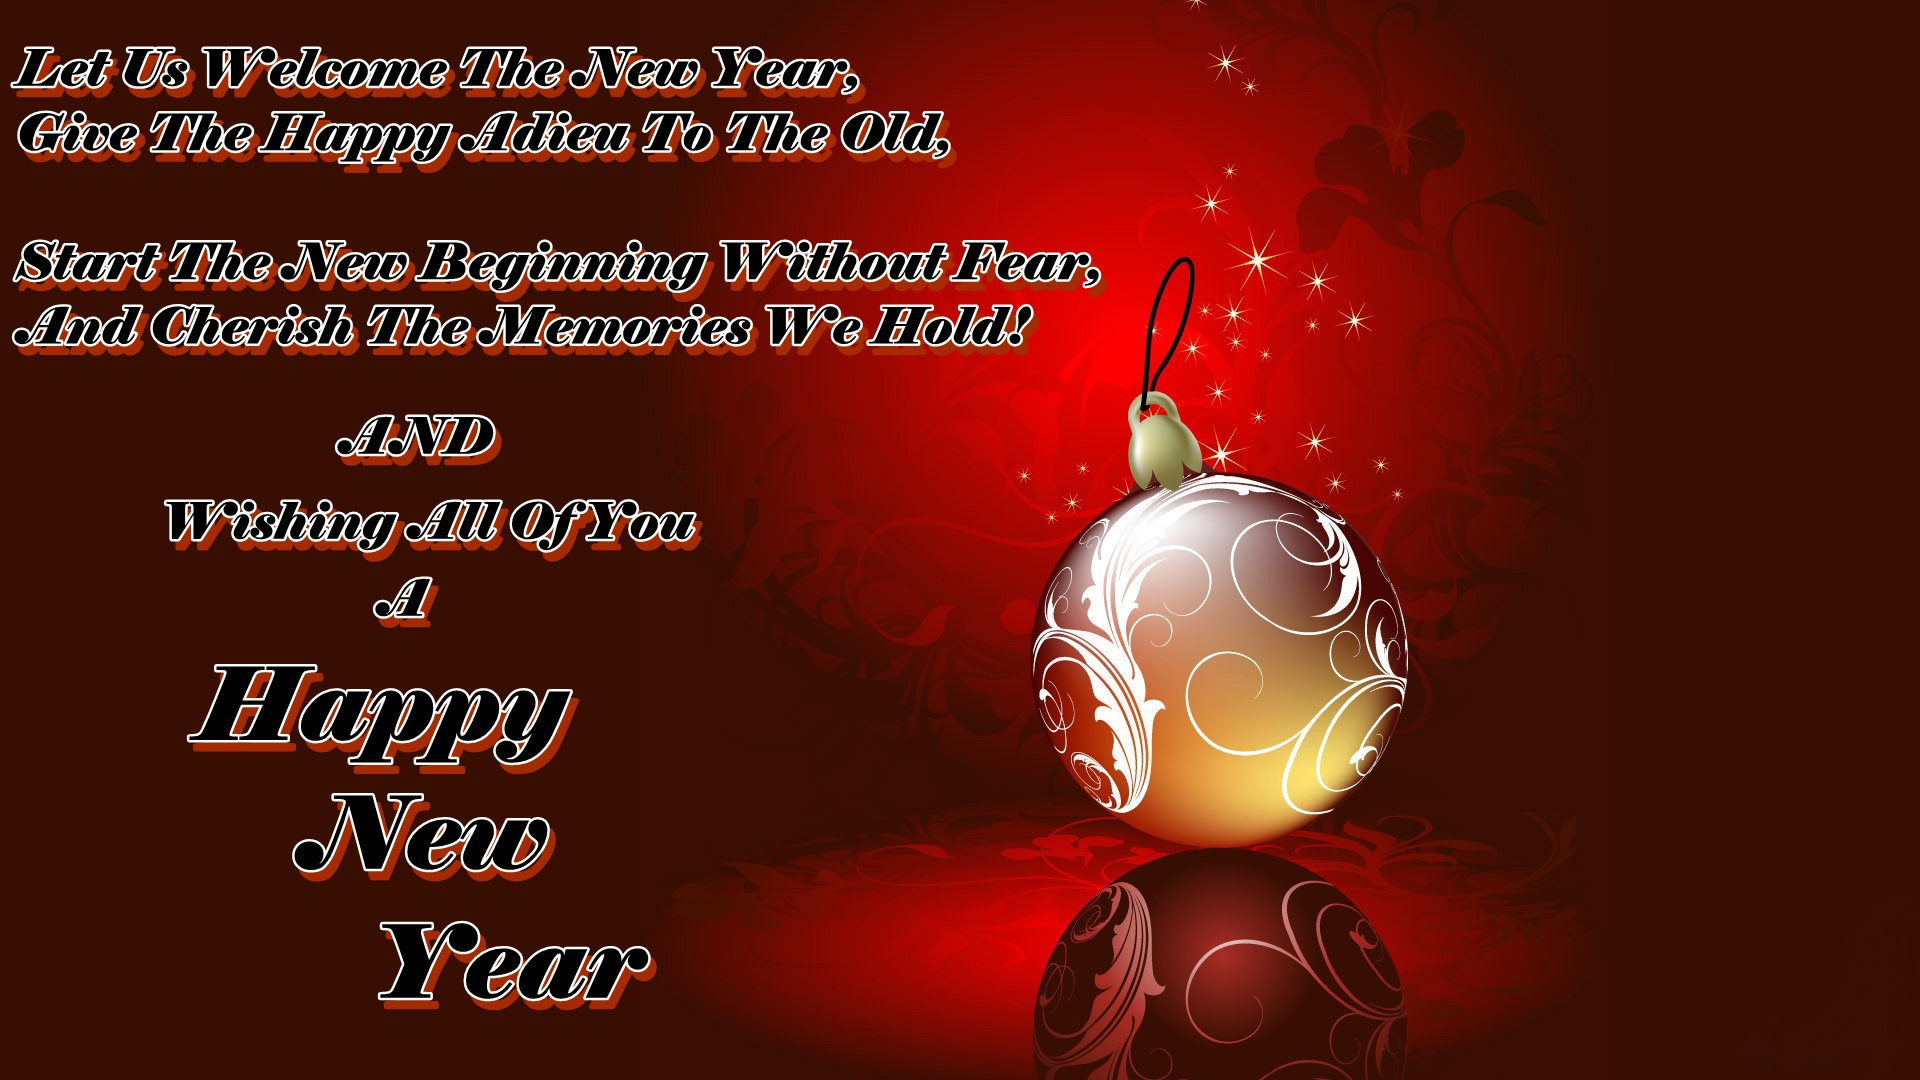 Best New Year Greeting Messages Merry Christmas And Happy New Year